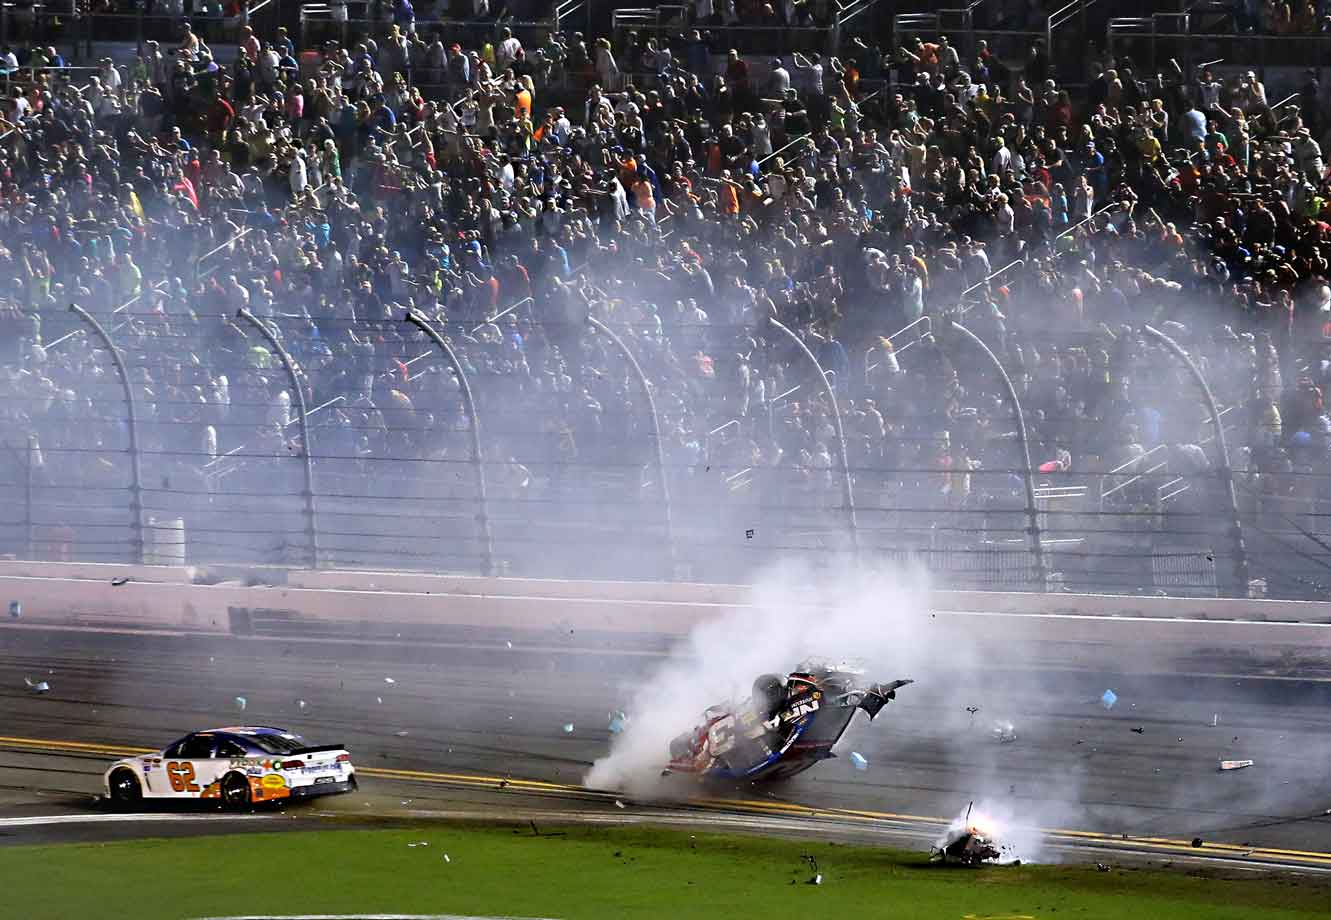 Rain delays were nearly the story of this July race, which started late (at 11:42 p.m. Eastern) and wound down well after bedtime (2:40 a.m.). But on the last lap, a Big One bubbled up just as race leader Dale Earnhardt Jr. crossed the finish line. The chain reaction sent Dillon's No. 3 Chevy soaring off the track and flipping sideways into the Turn 1 catch fence. The car landed back on track, roof-side down, and suffered another hit from the No. 2 car of Brad Keselowski. Dillon walked away unscathed, but some fans behind the fence had to be hospitalized after being struck by debris.